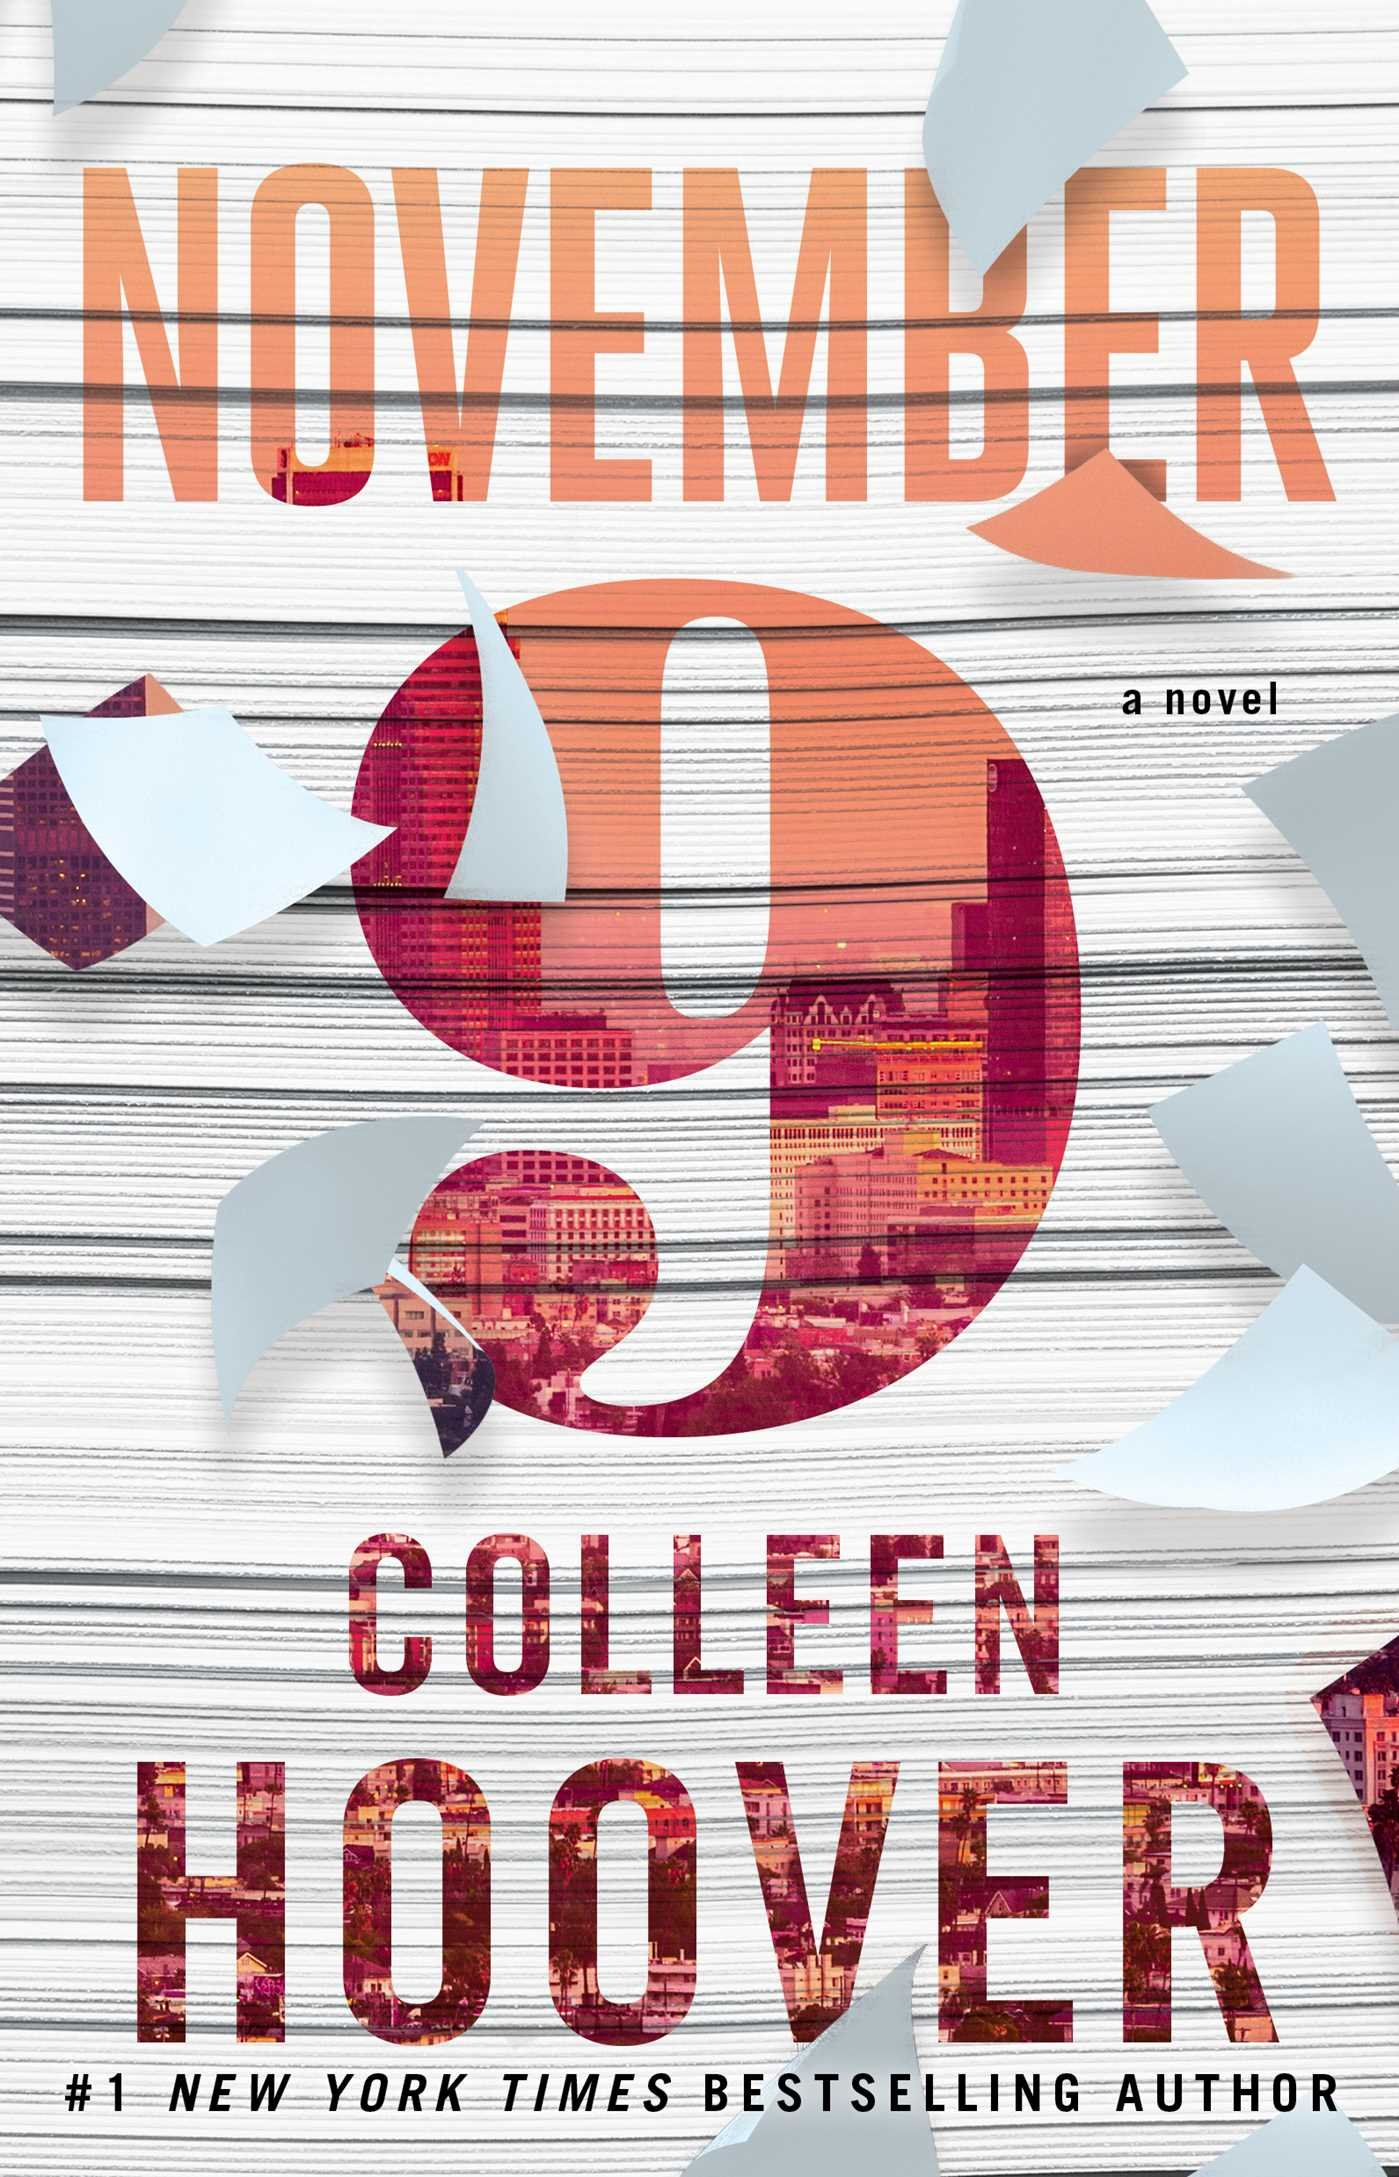 Colleen hoover books goodreads giveaways